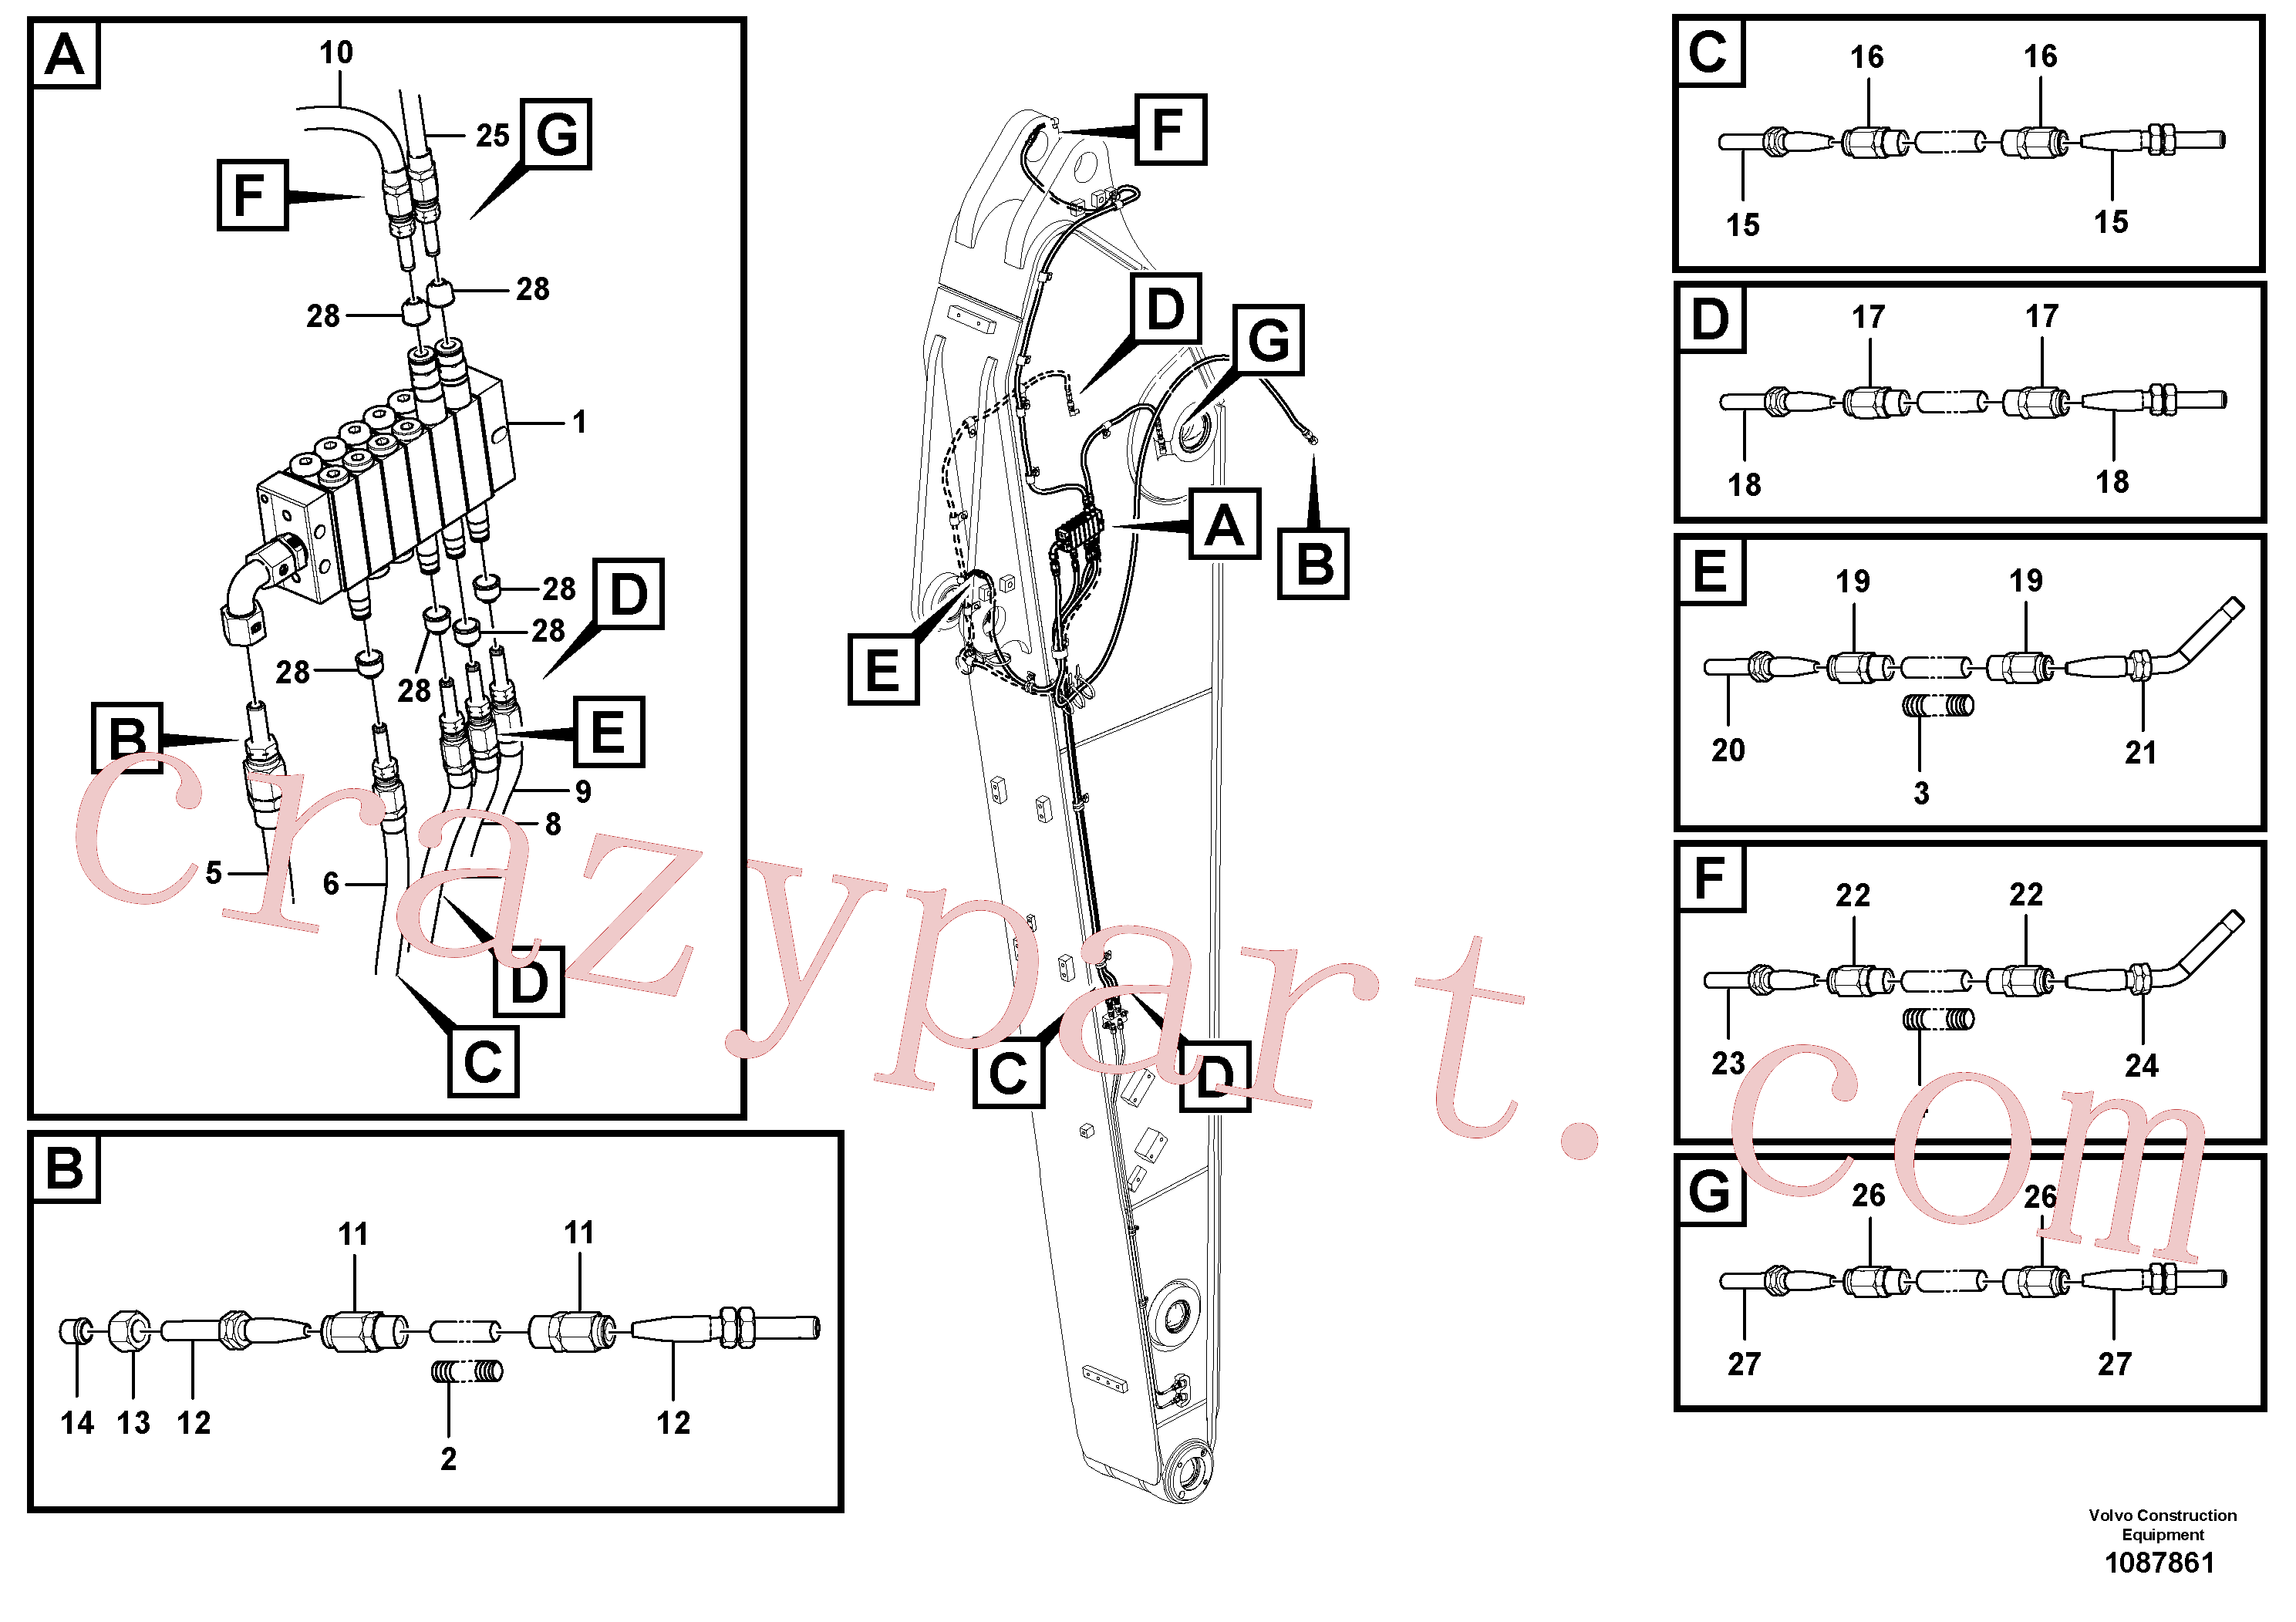 VOE14389578 for Volvo Distributor set, arm(1087861 assembly)